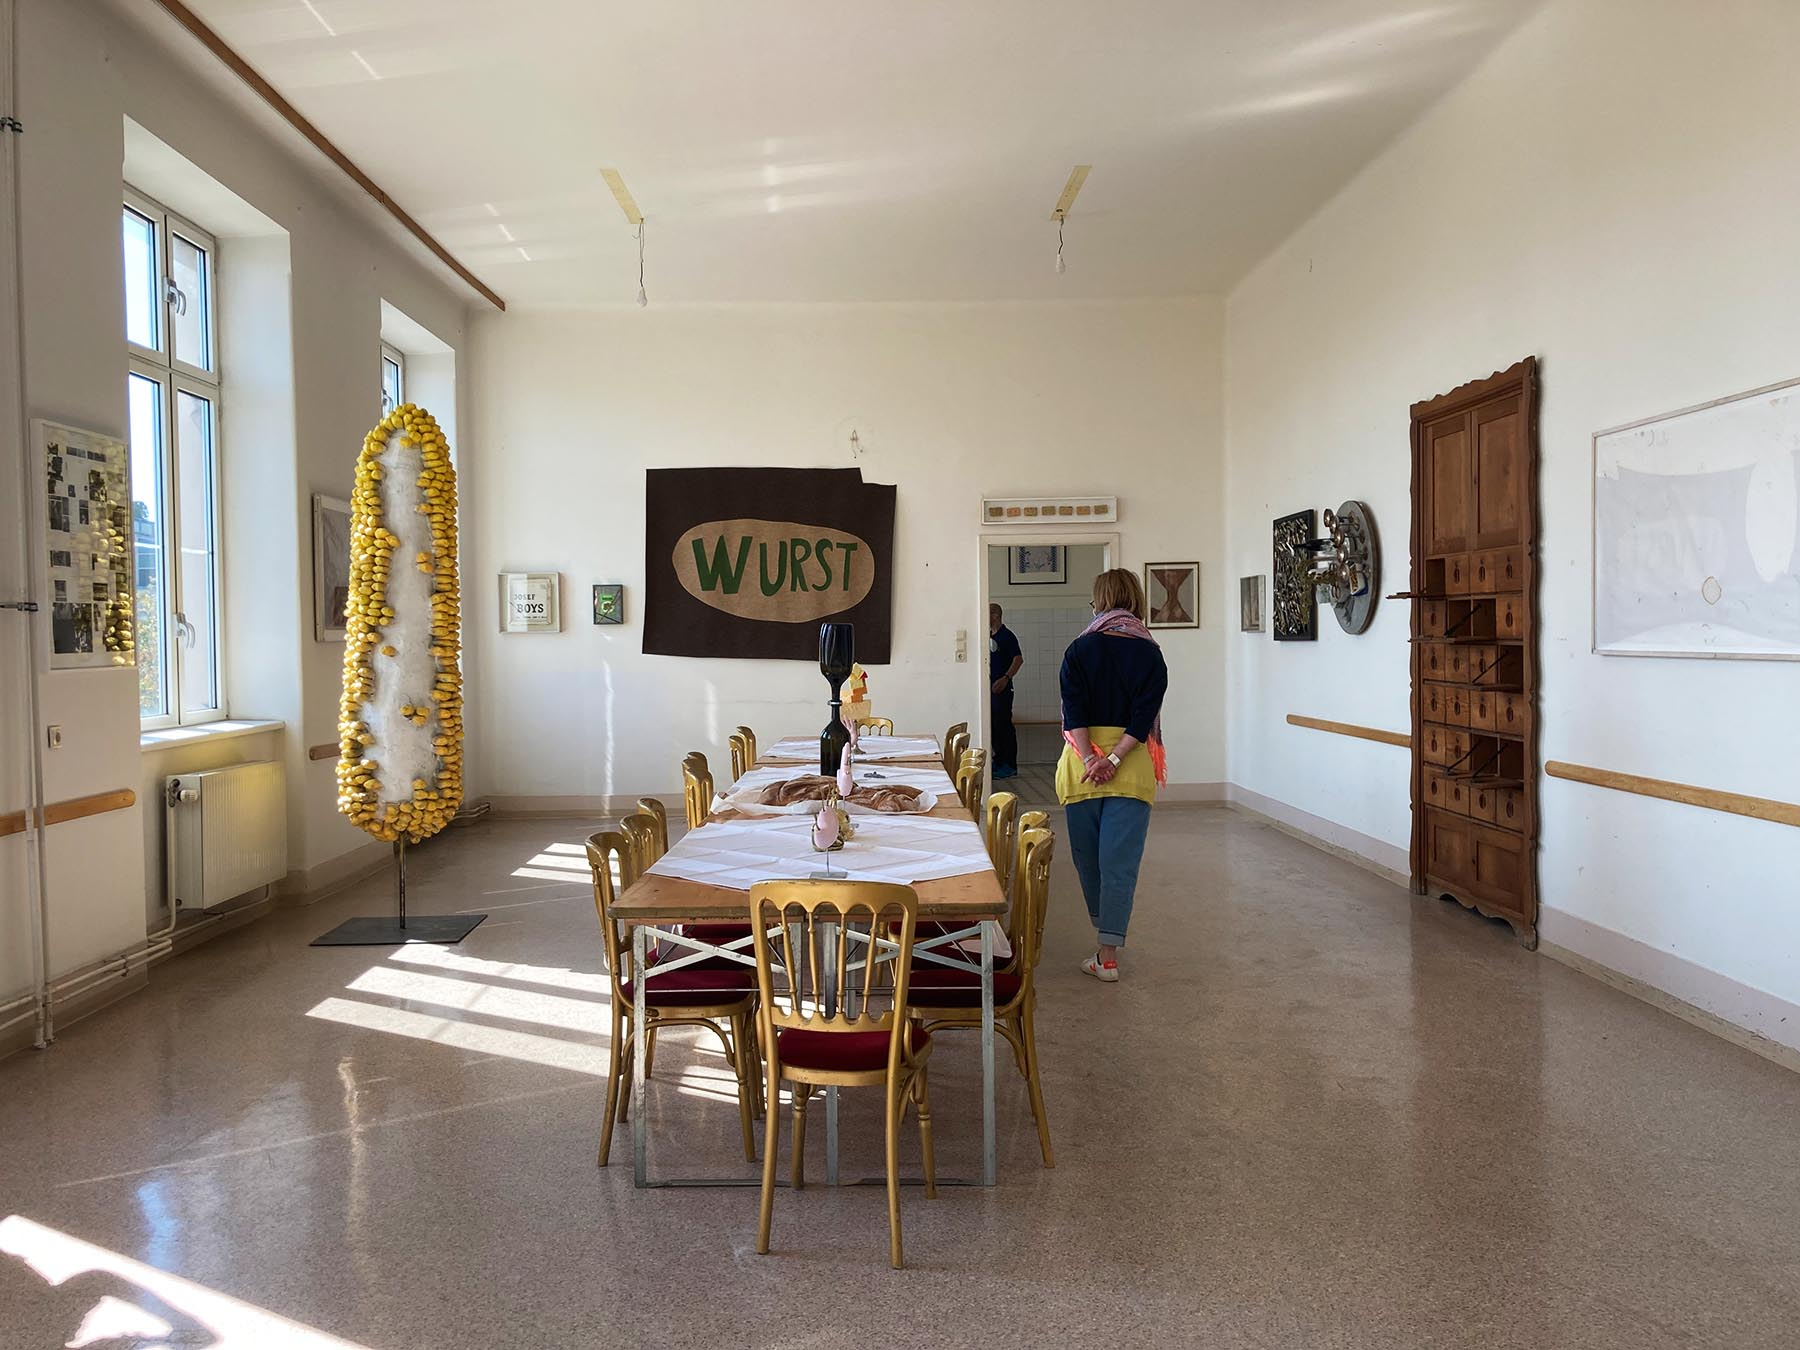 parallel vienna, cantine, group art show with installations